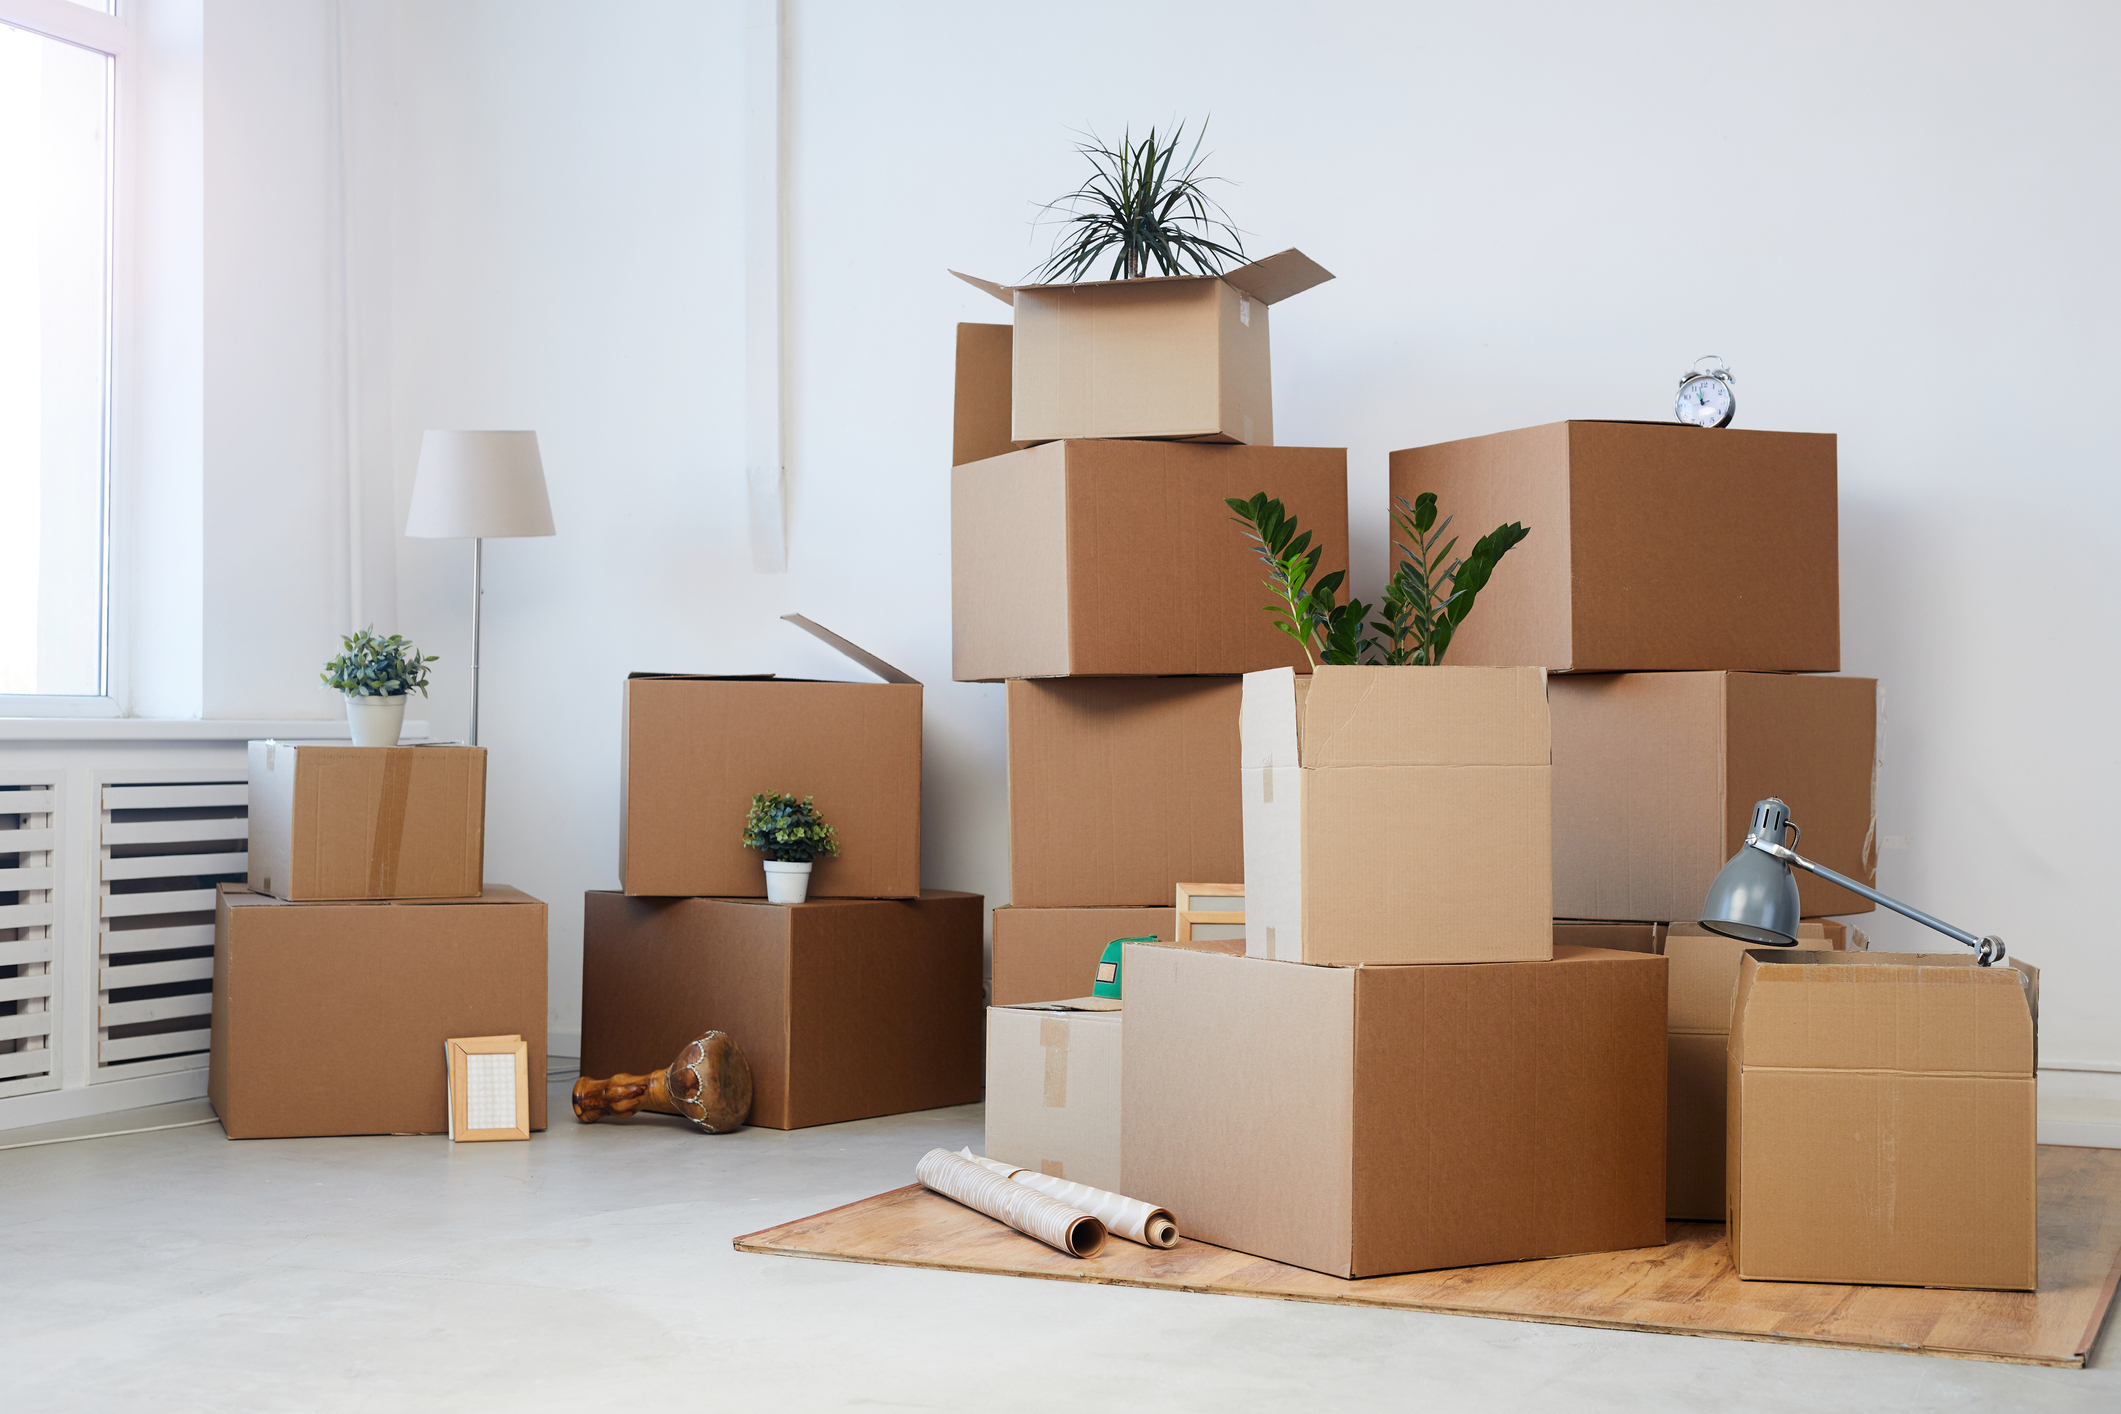 A stack of cardboard boxes in a living room.